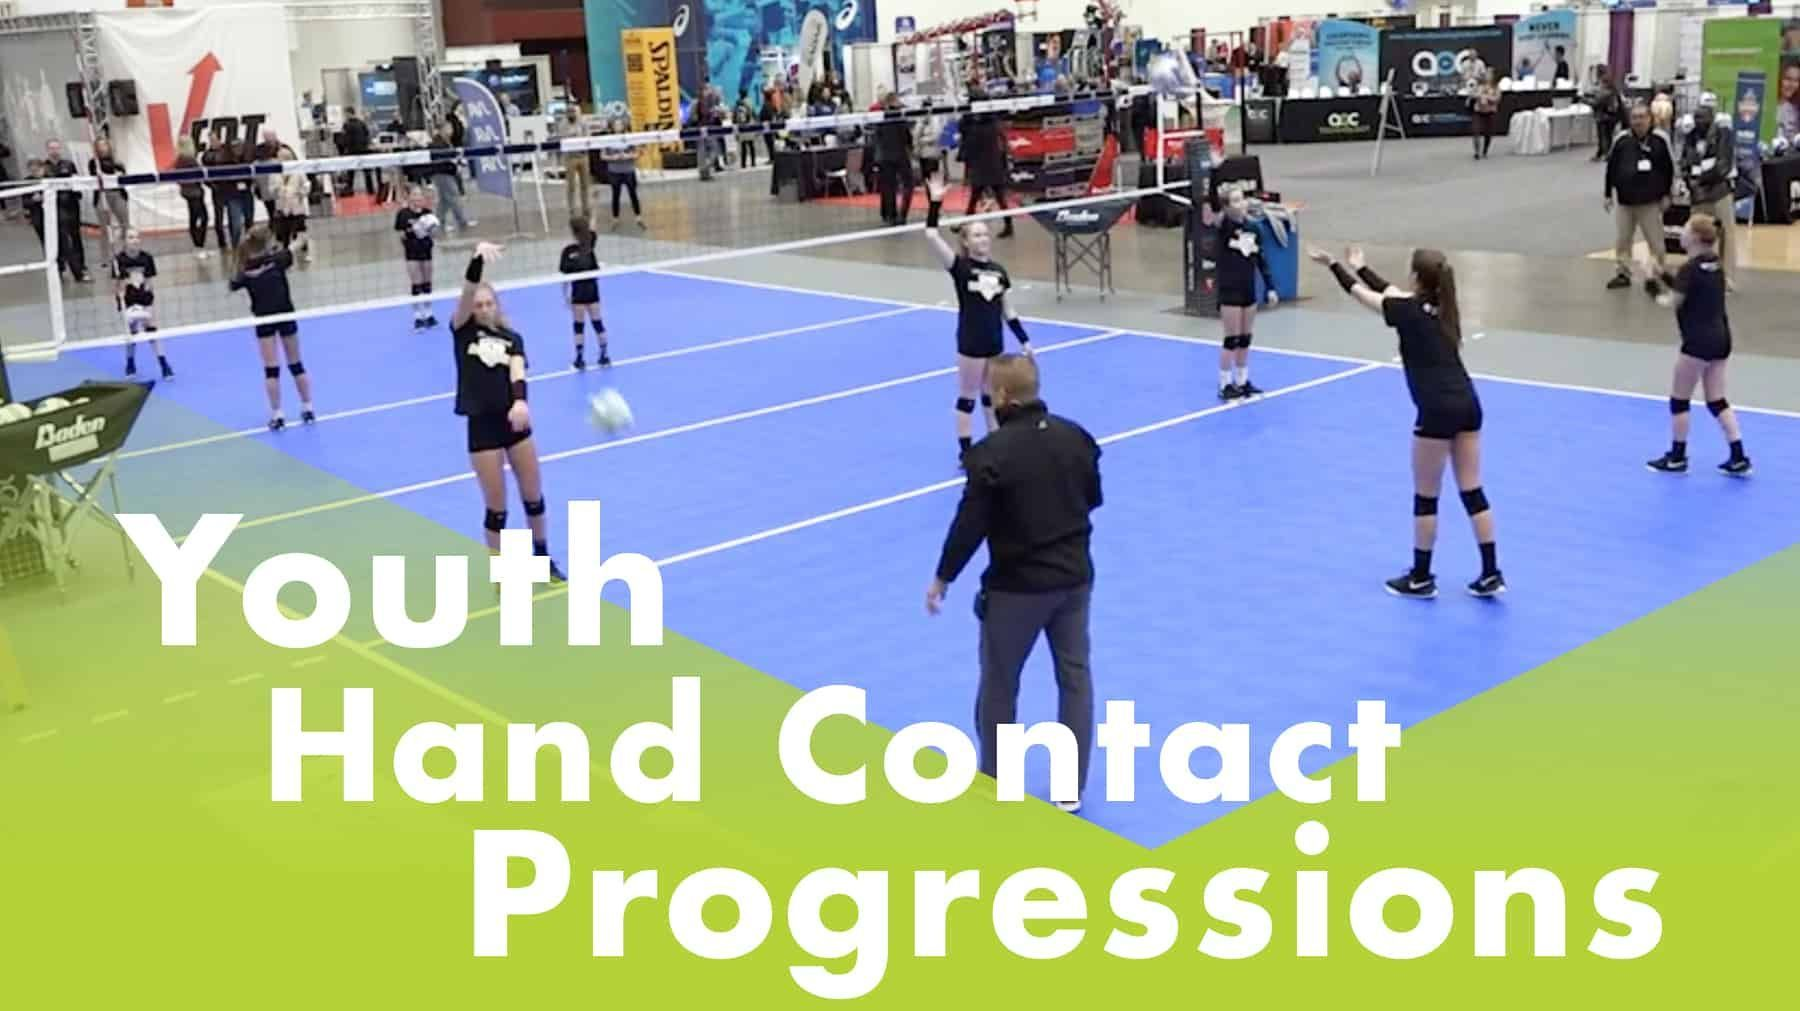 Youth Hand Contact Progressions Coaching Volleyball Volleyball Training Volleyball Drills